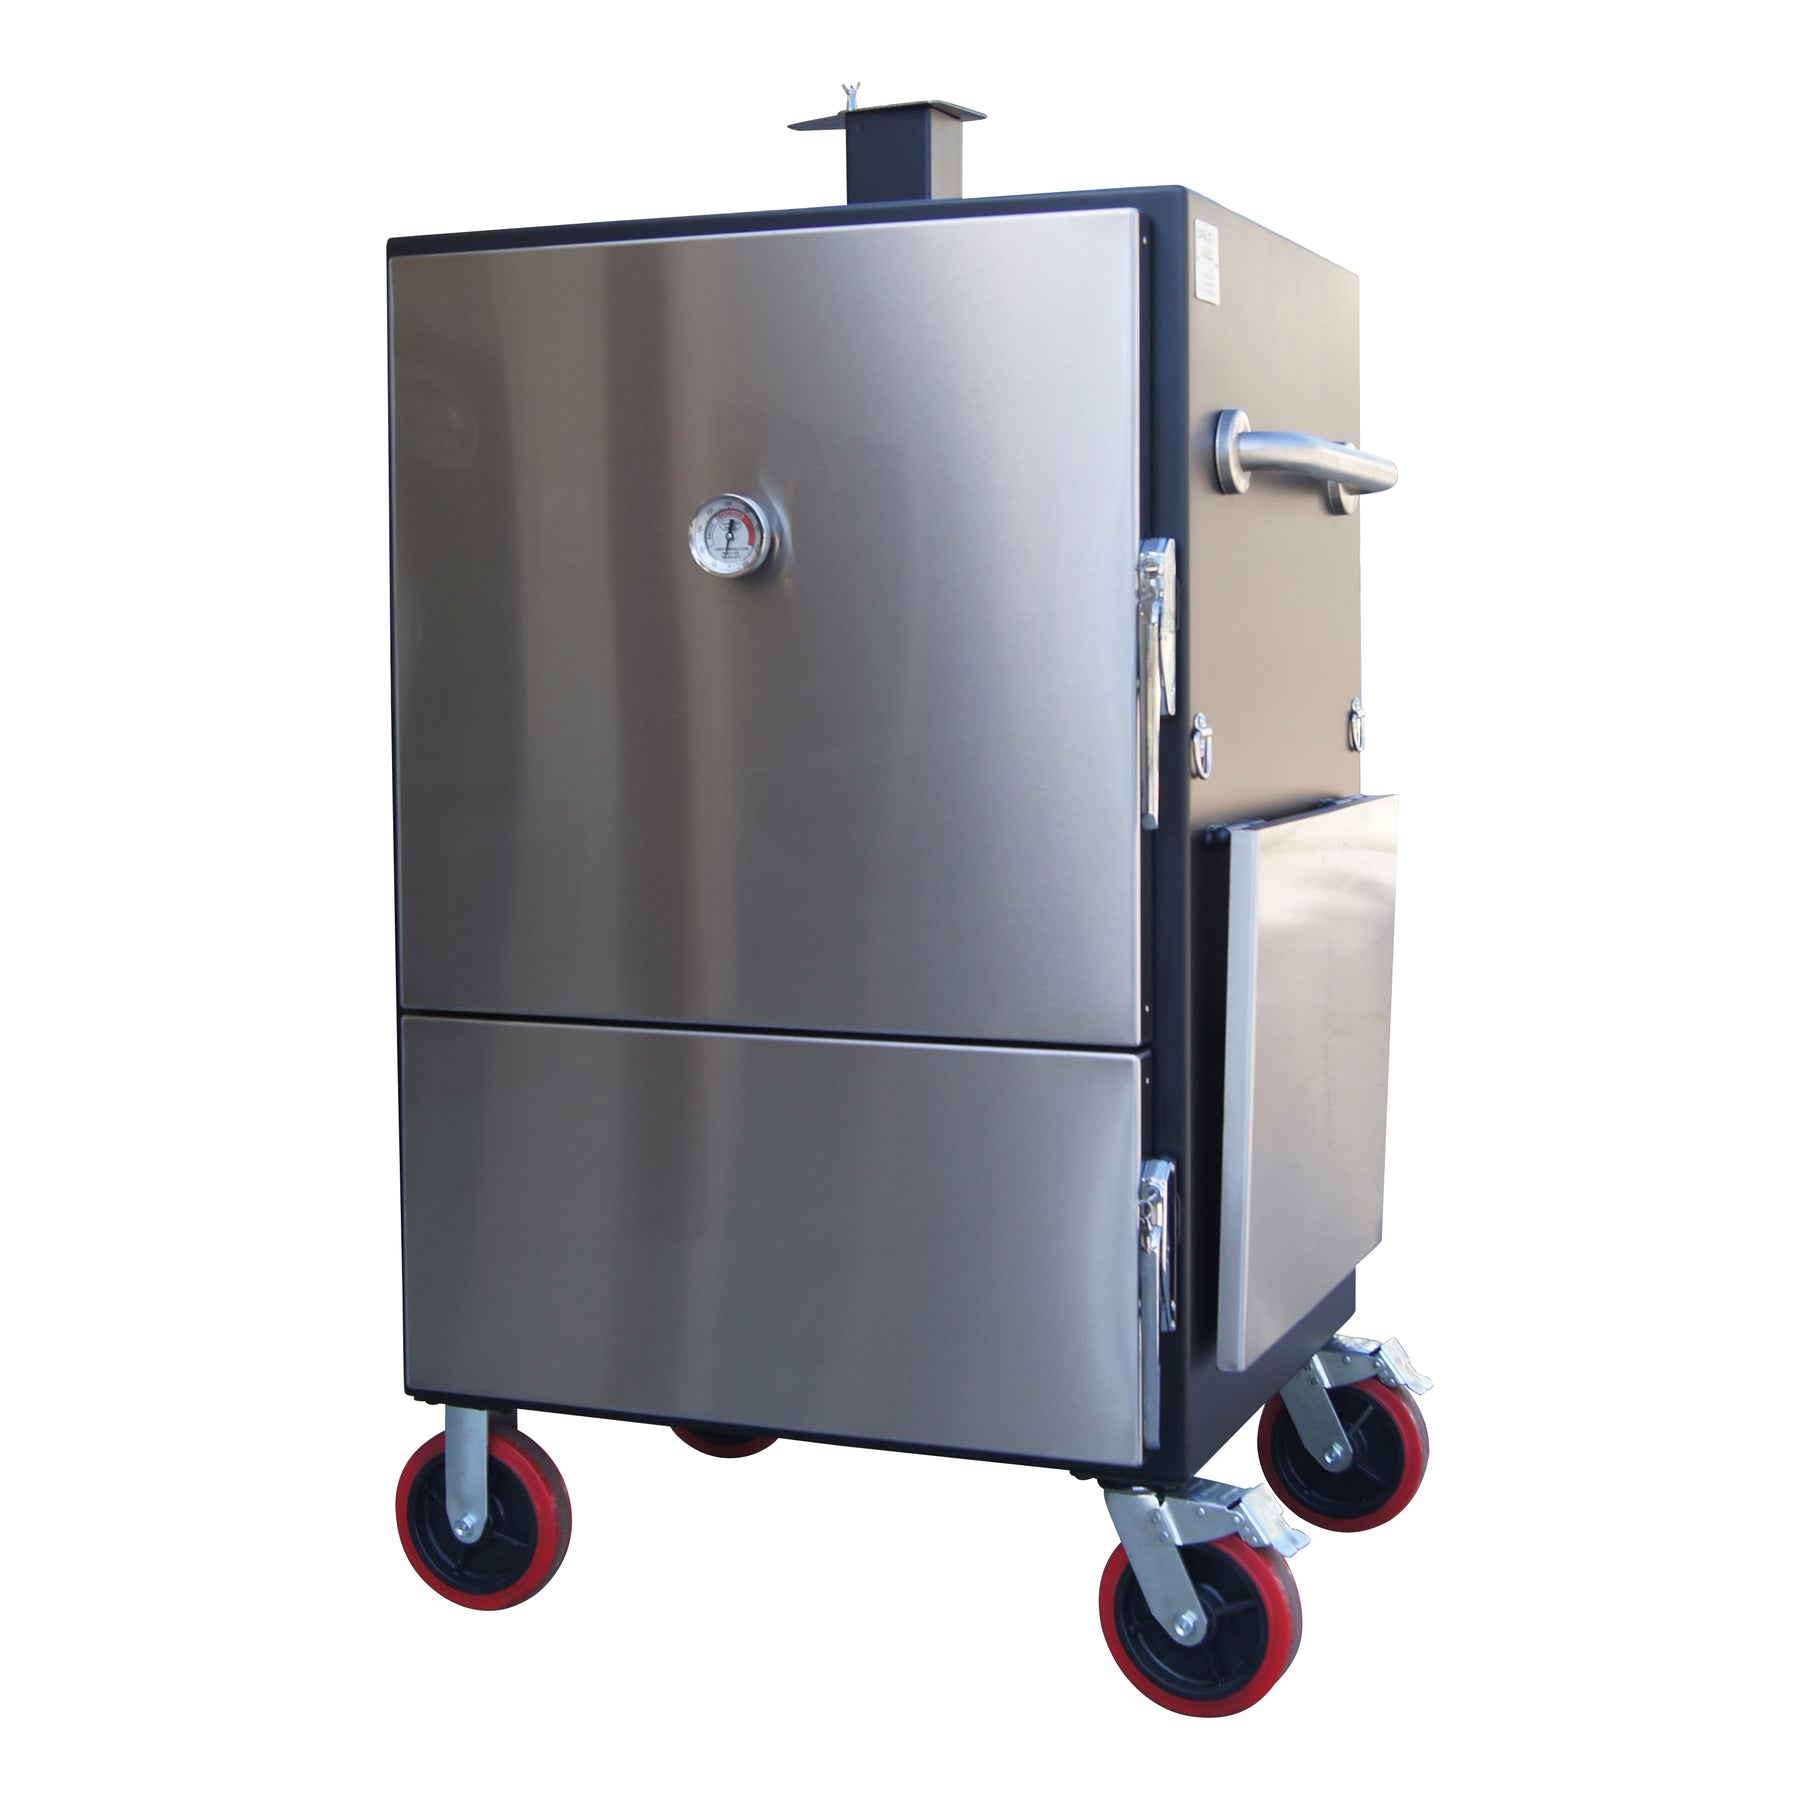 Large Insulated Cabinet Smoker – Lone Star Grillz